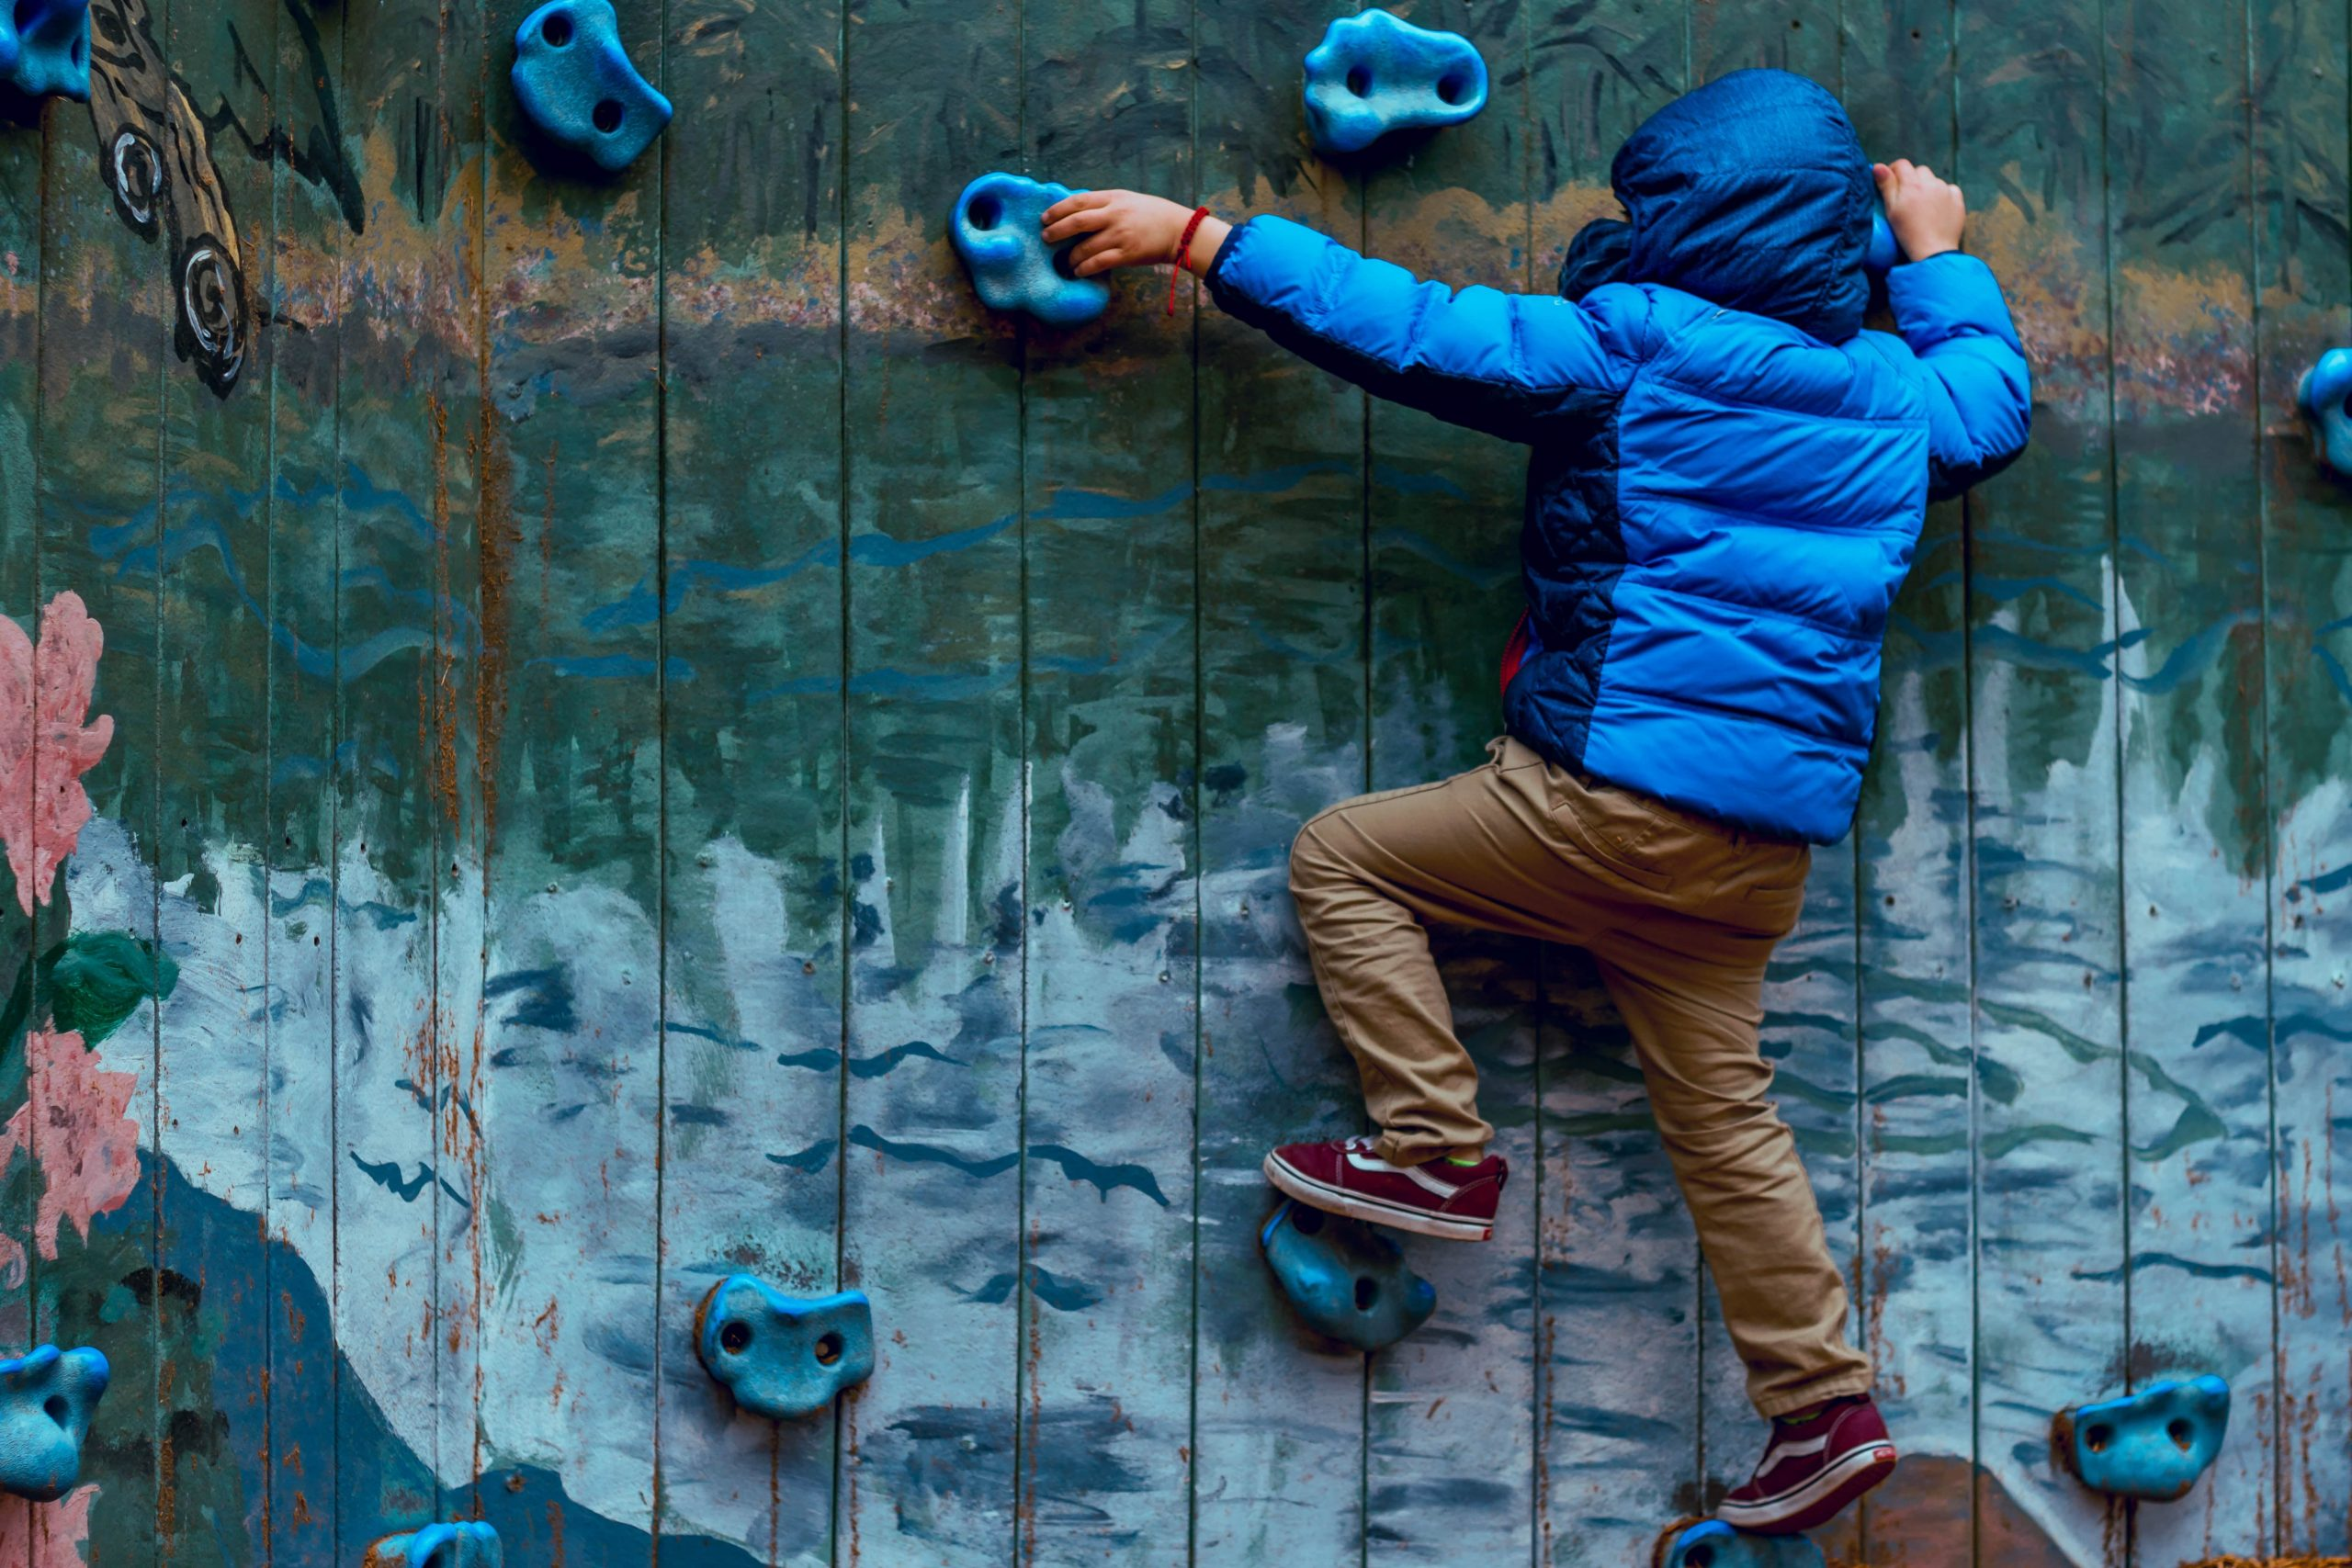 A boy climbs a rock wall with a mountain scene painted in the background.